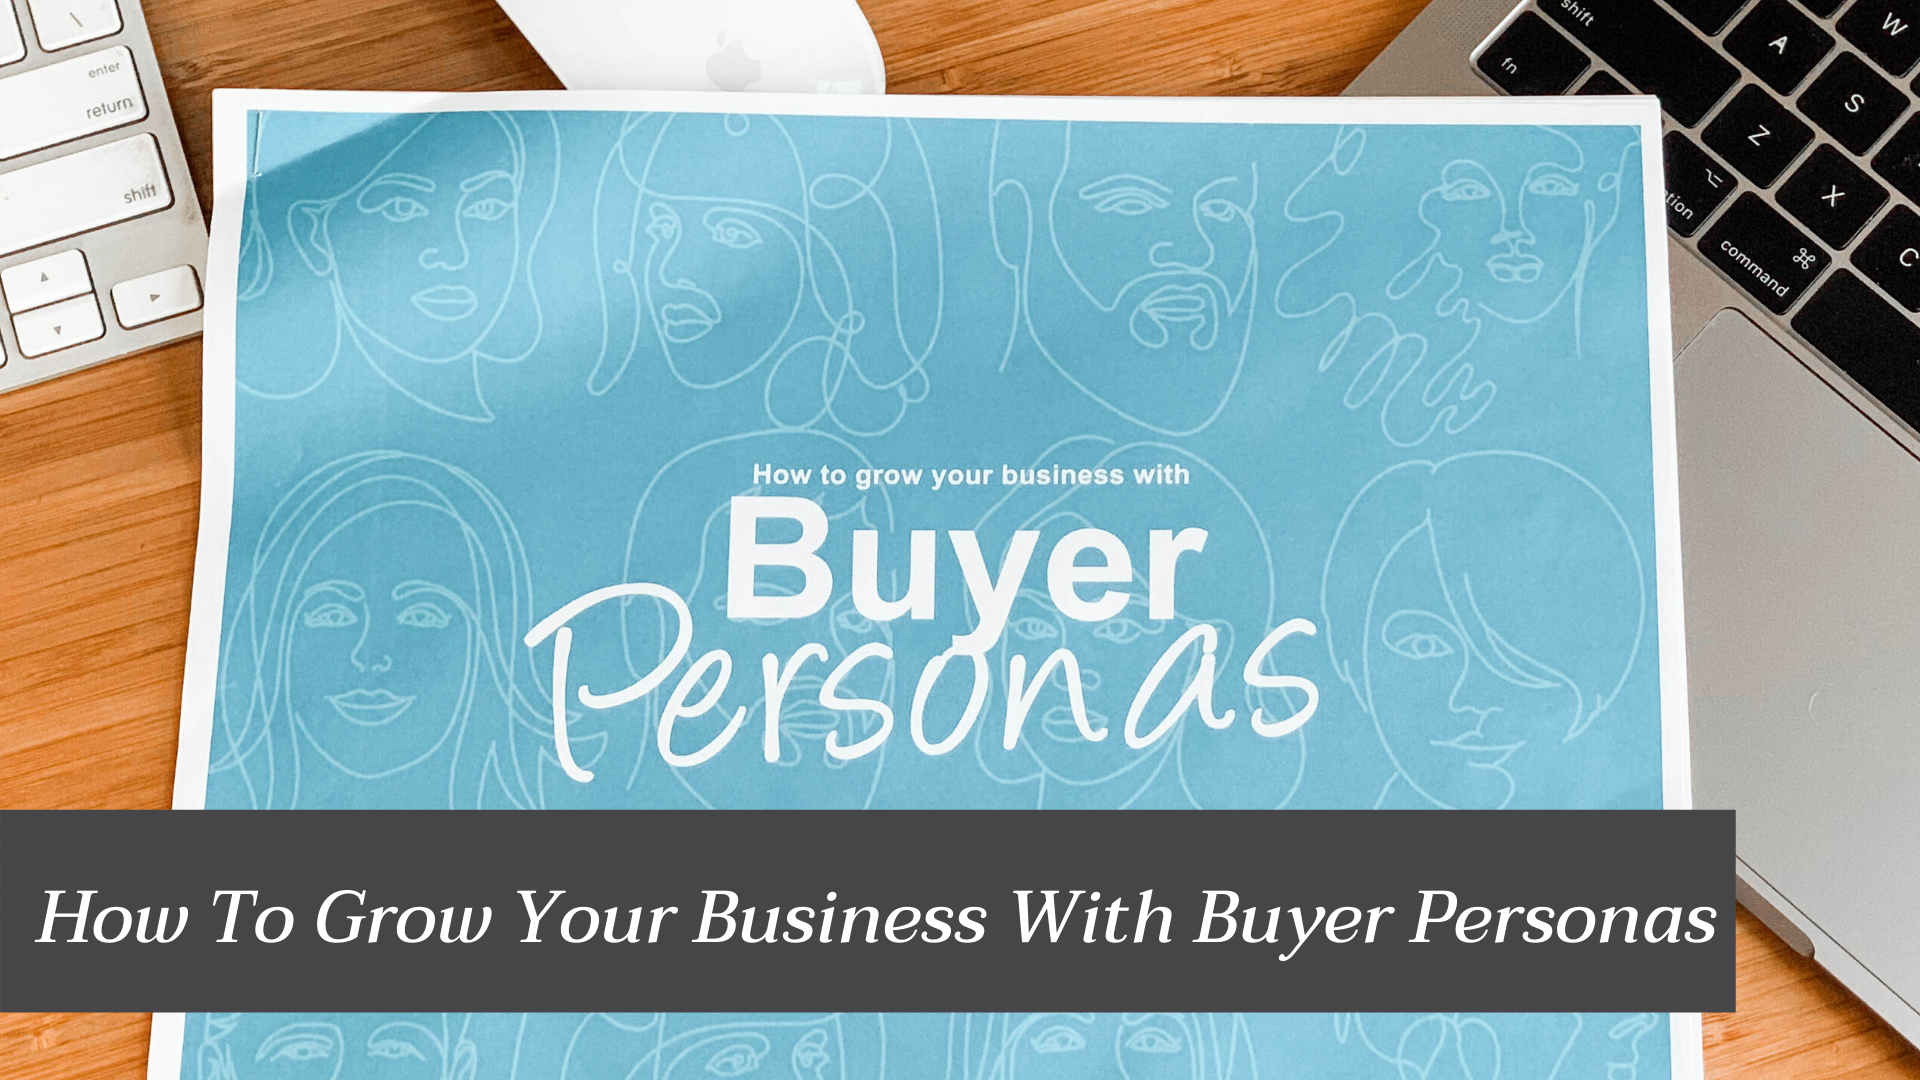 How To Grow Business With Buyer Personas